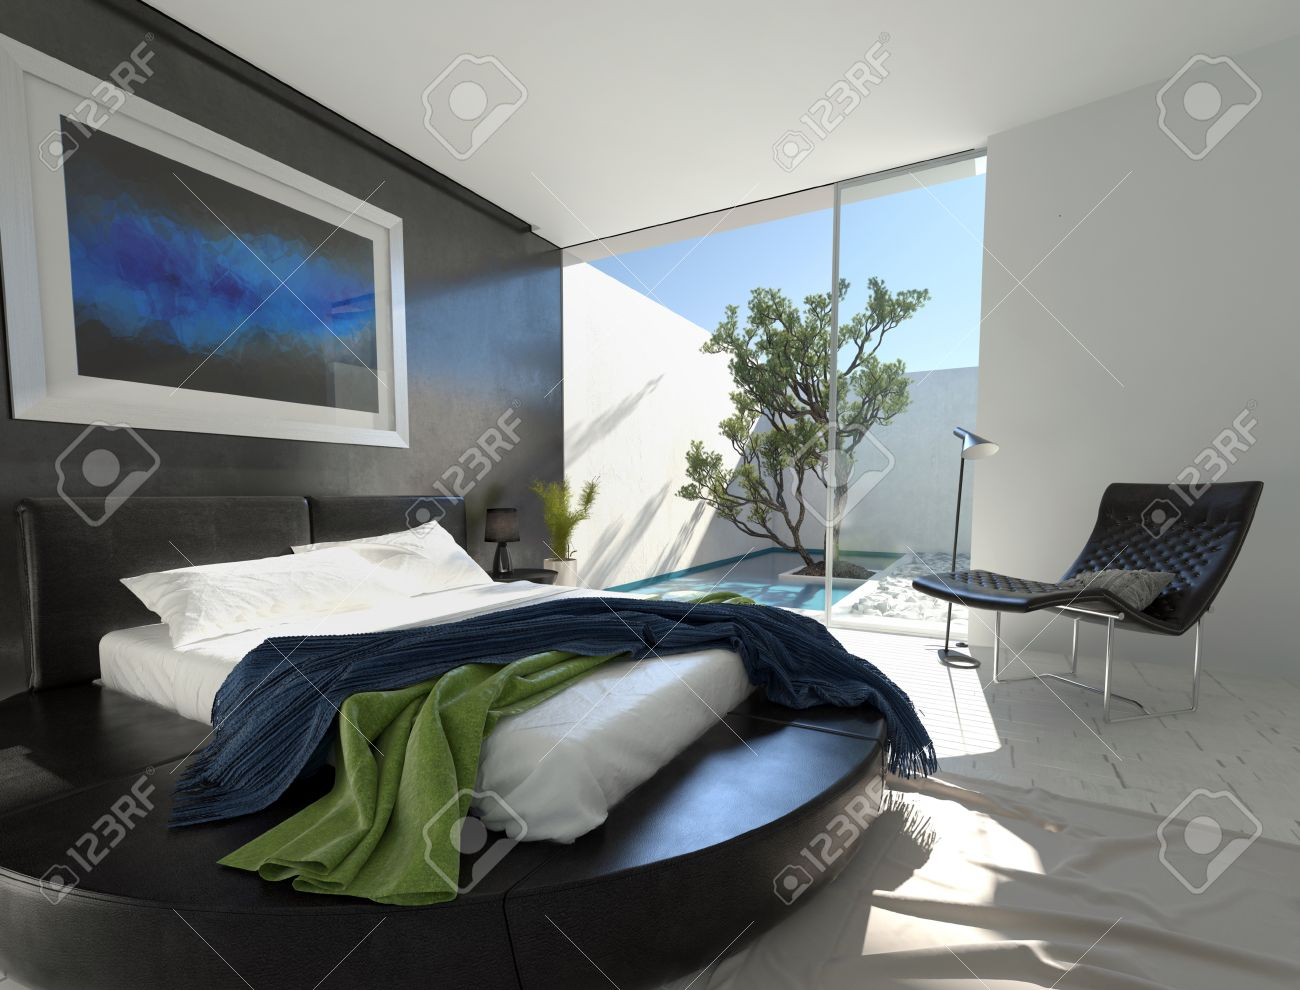 Circular Bed Luxury Black Leather Bed On A Circular Podium In A Modern Bedroom